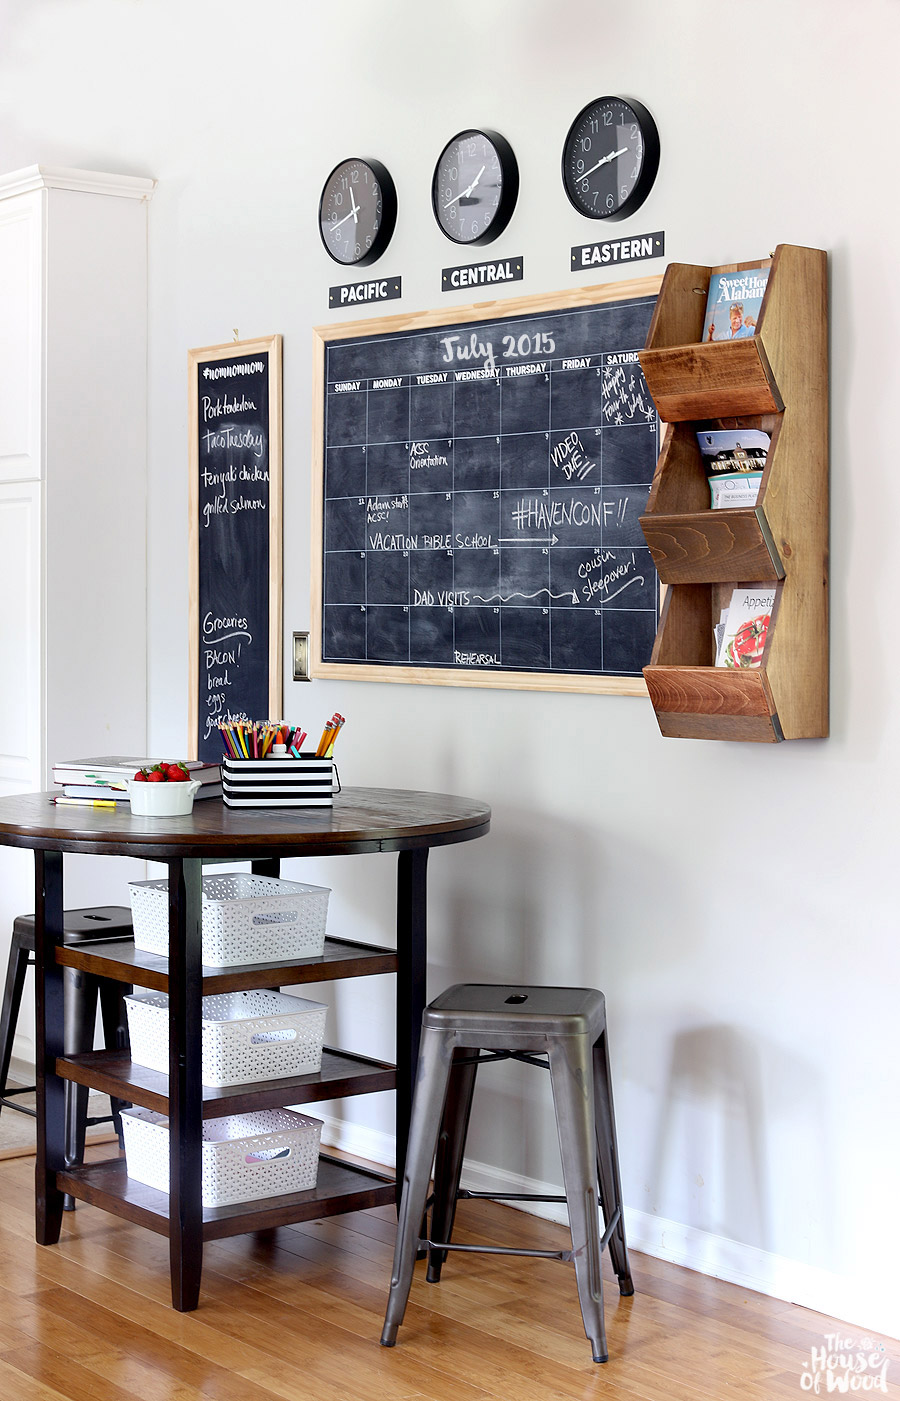 Ten Amazing Command Centers to keep your family organized. #commandcenter #organization #mudroominspiration #backtoschool